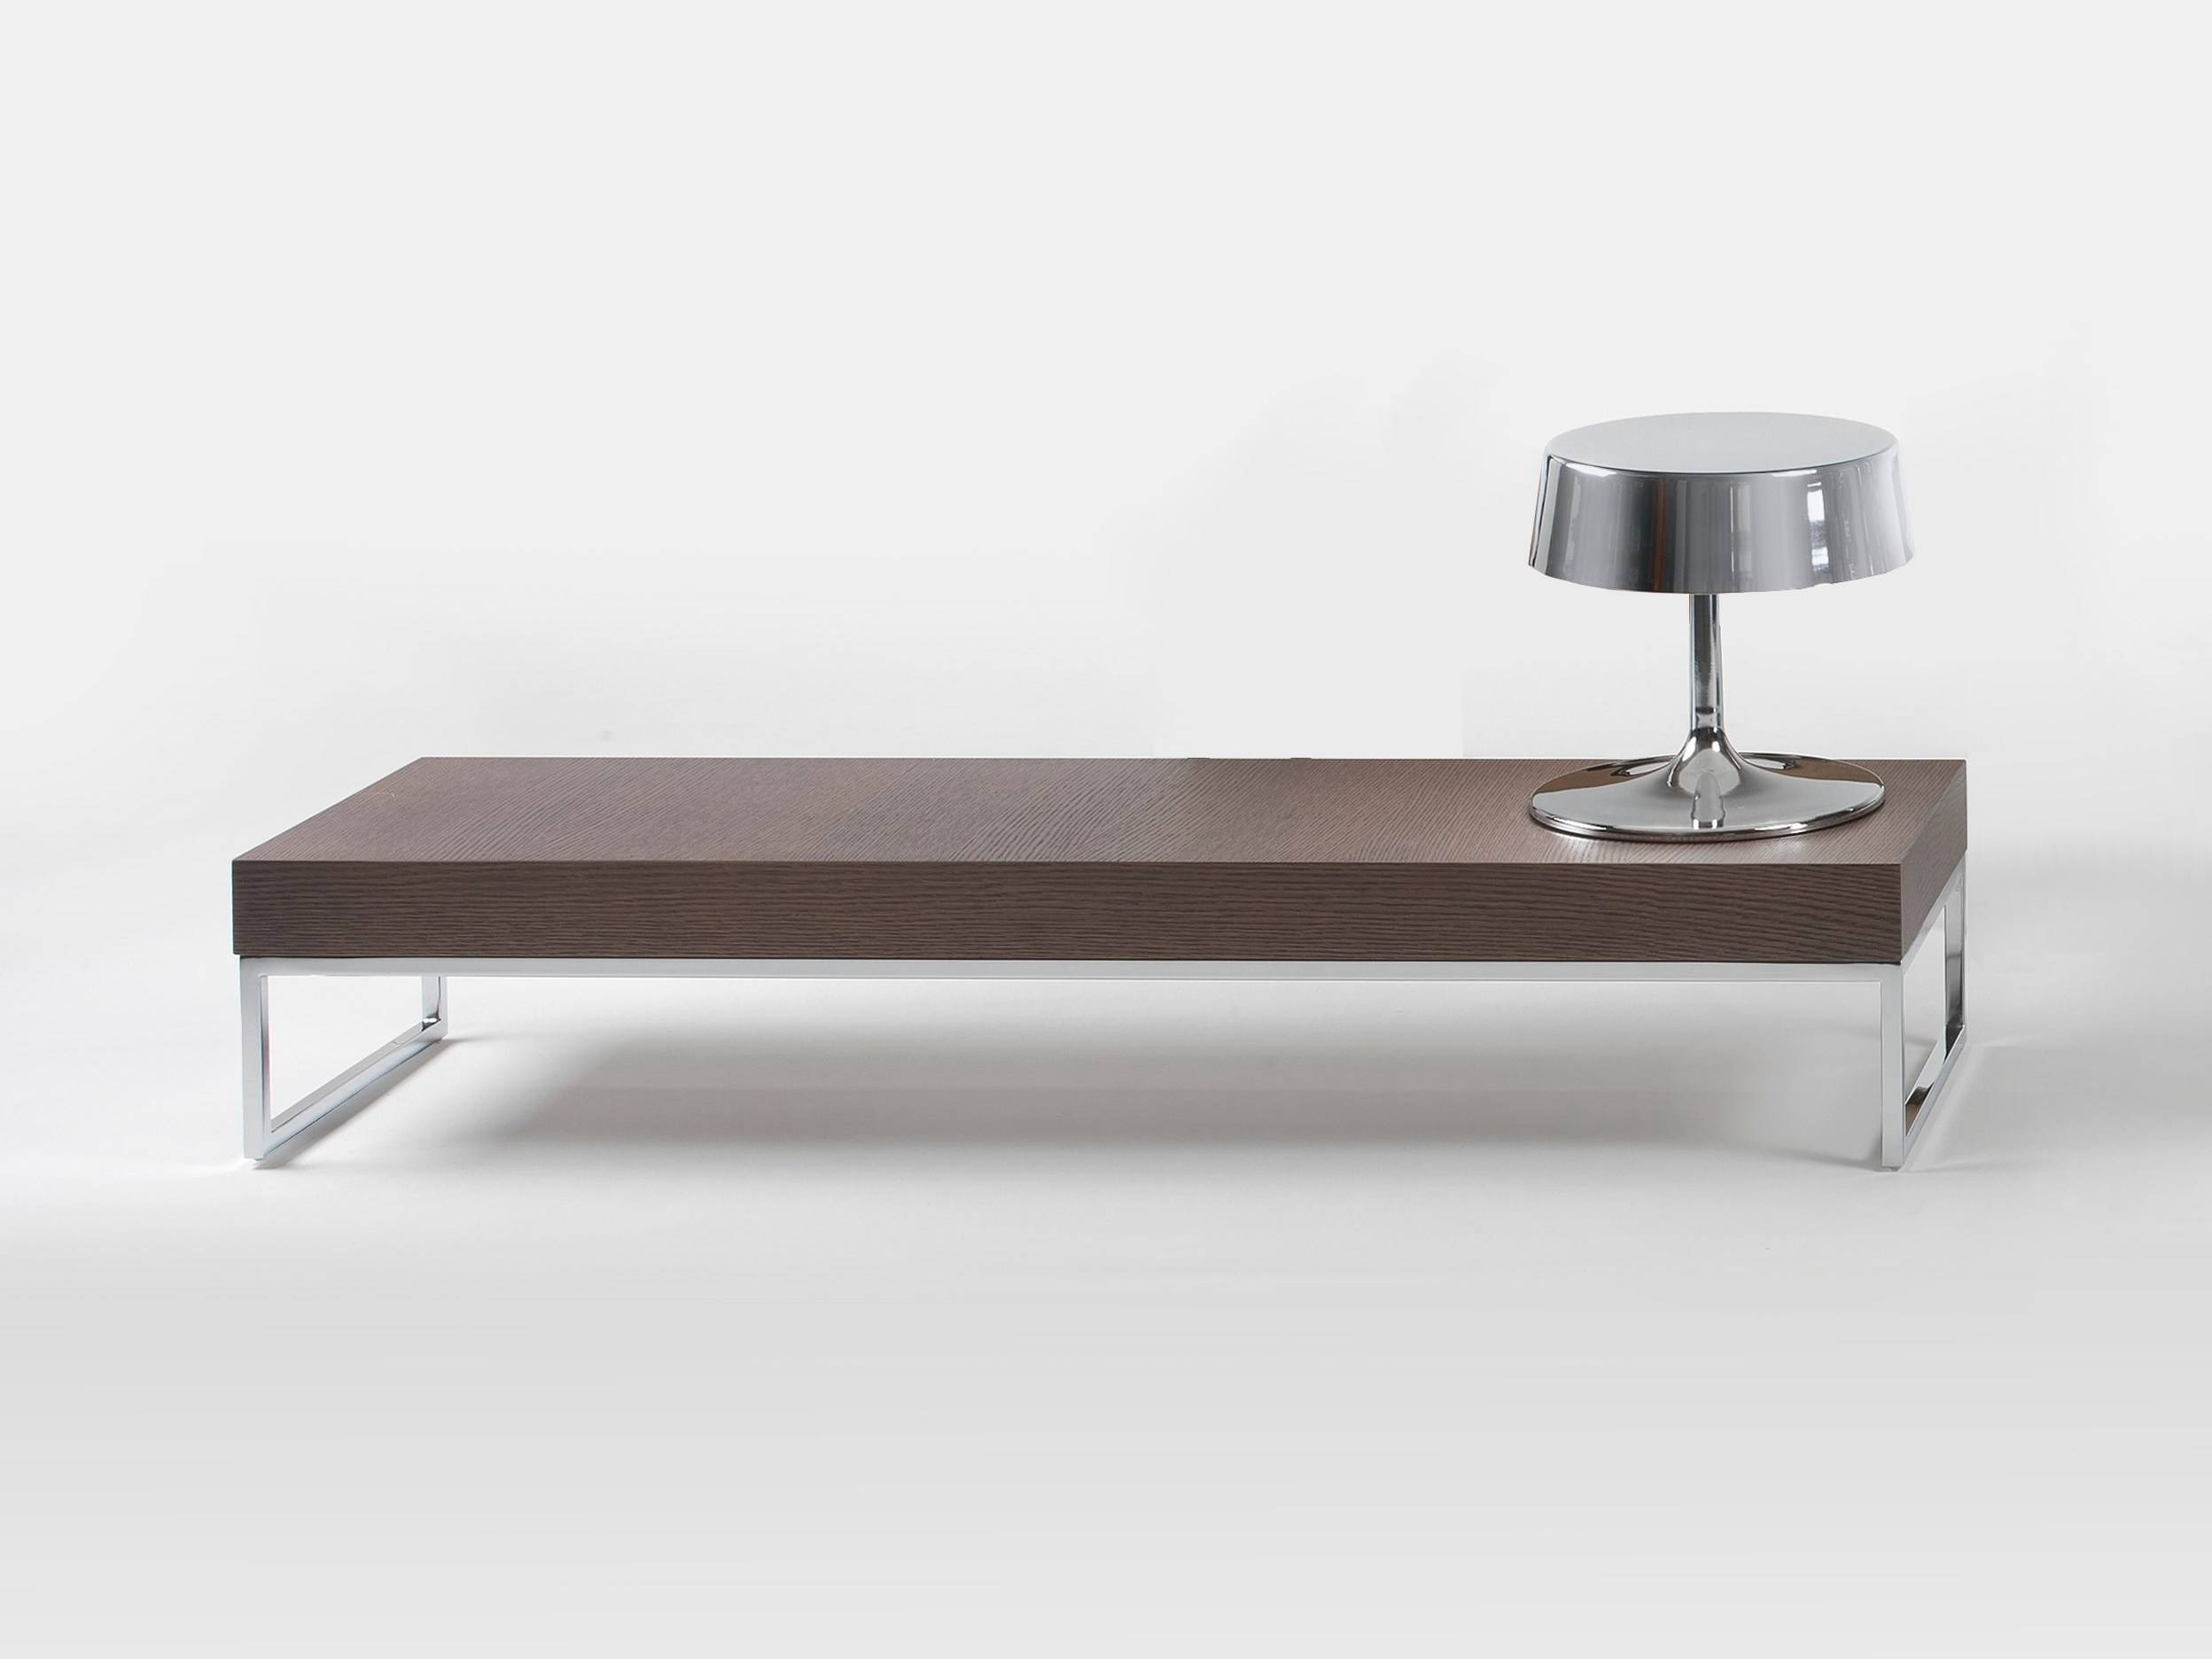 Low Profile Coffee Table – Low Profile Coffee Table Uk, Low Within Large Low Coffee Tables (View 5 of 15)